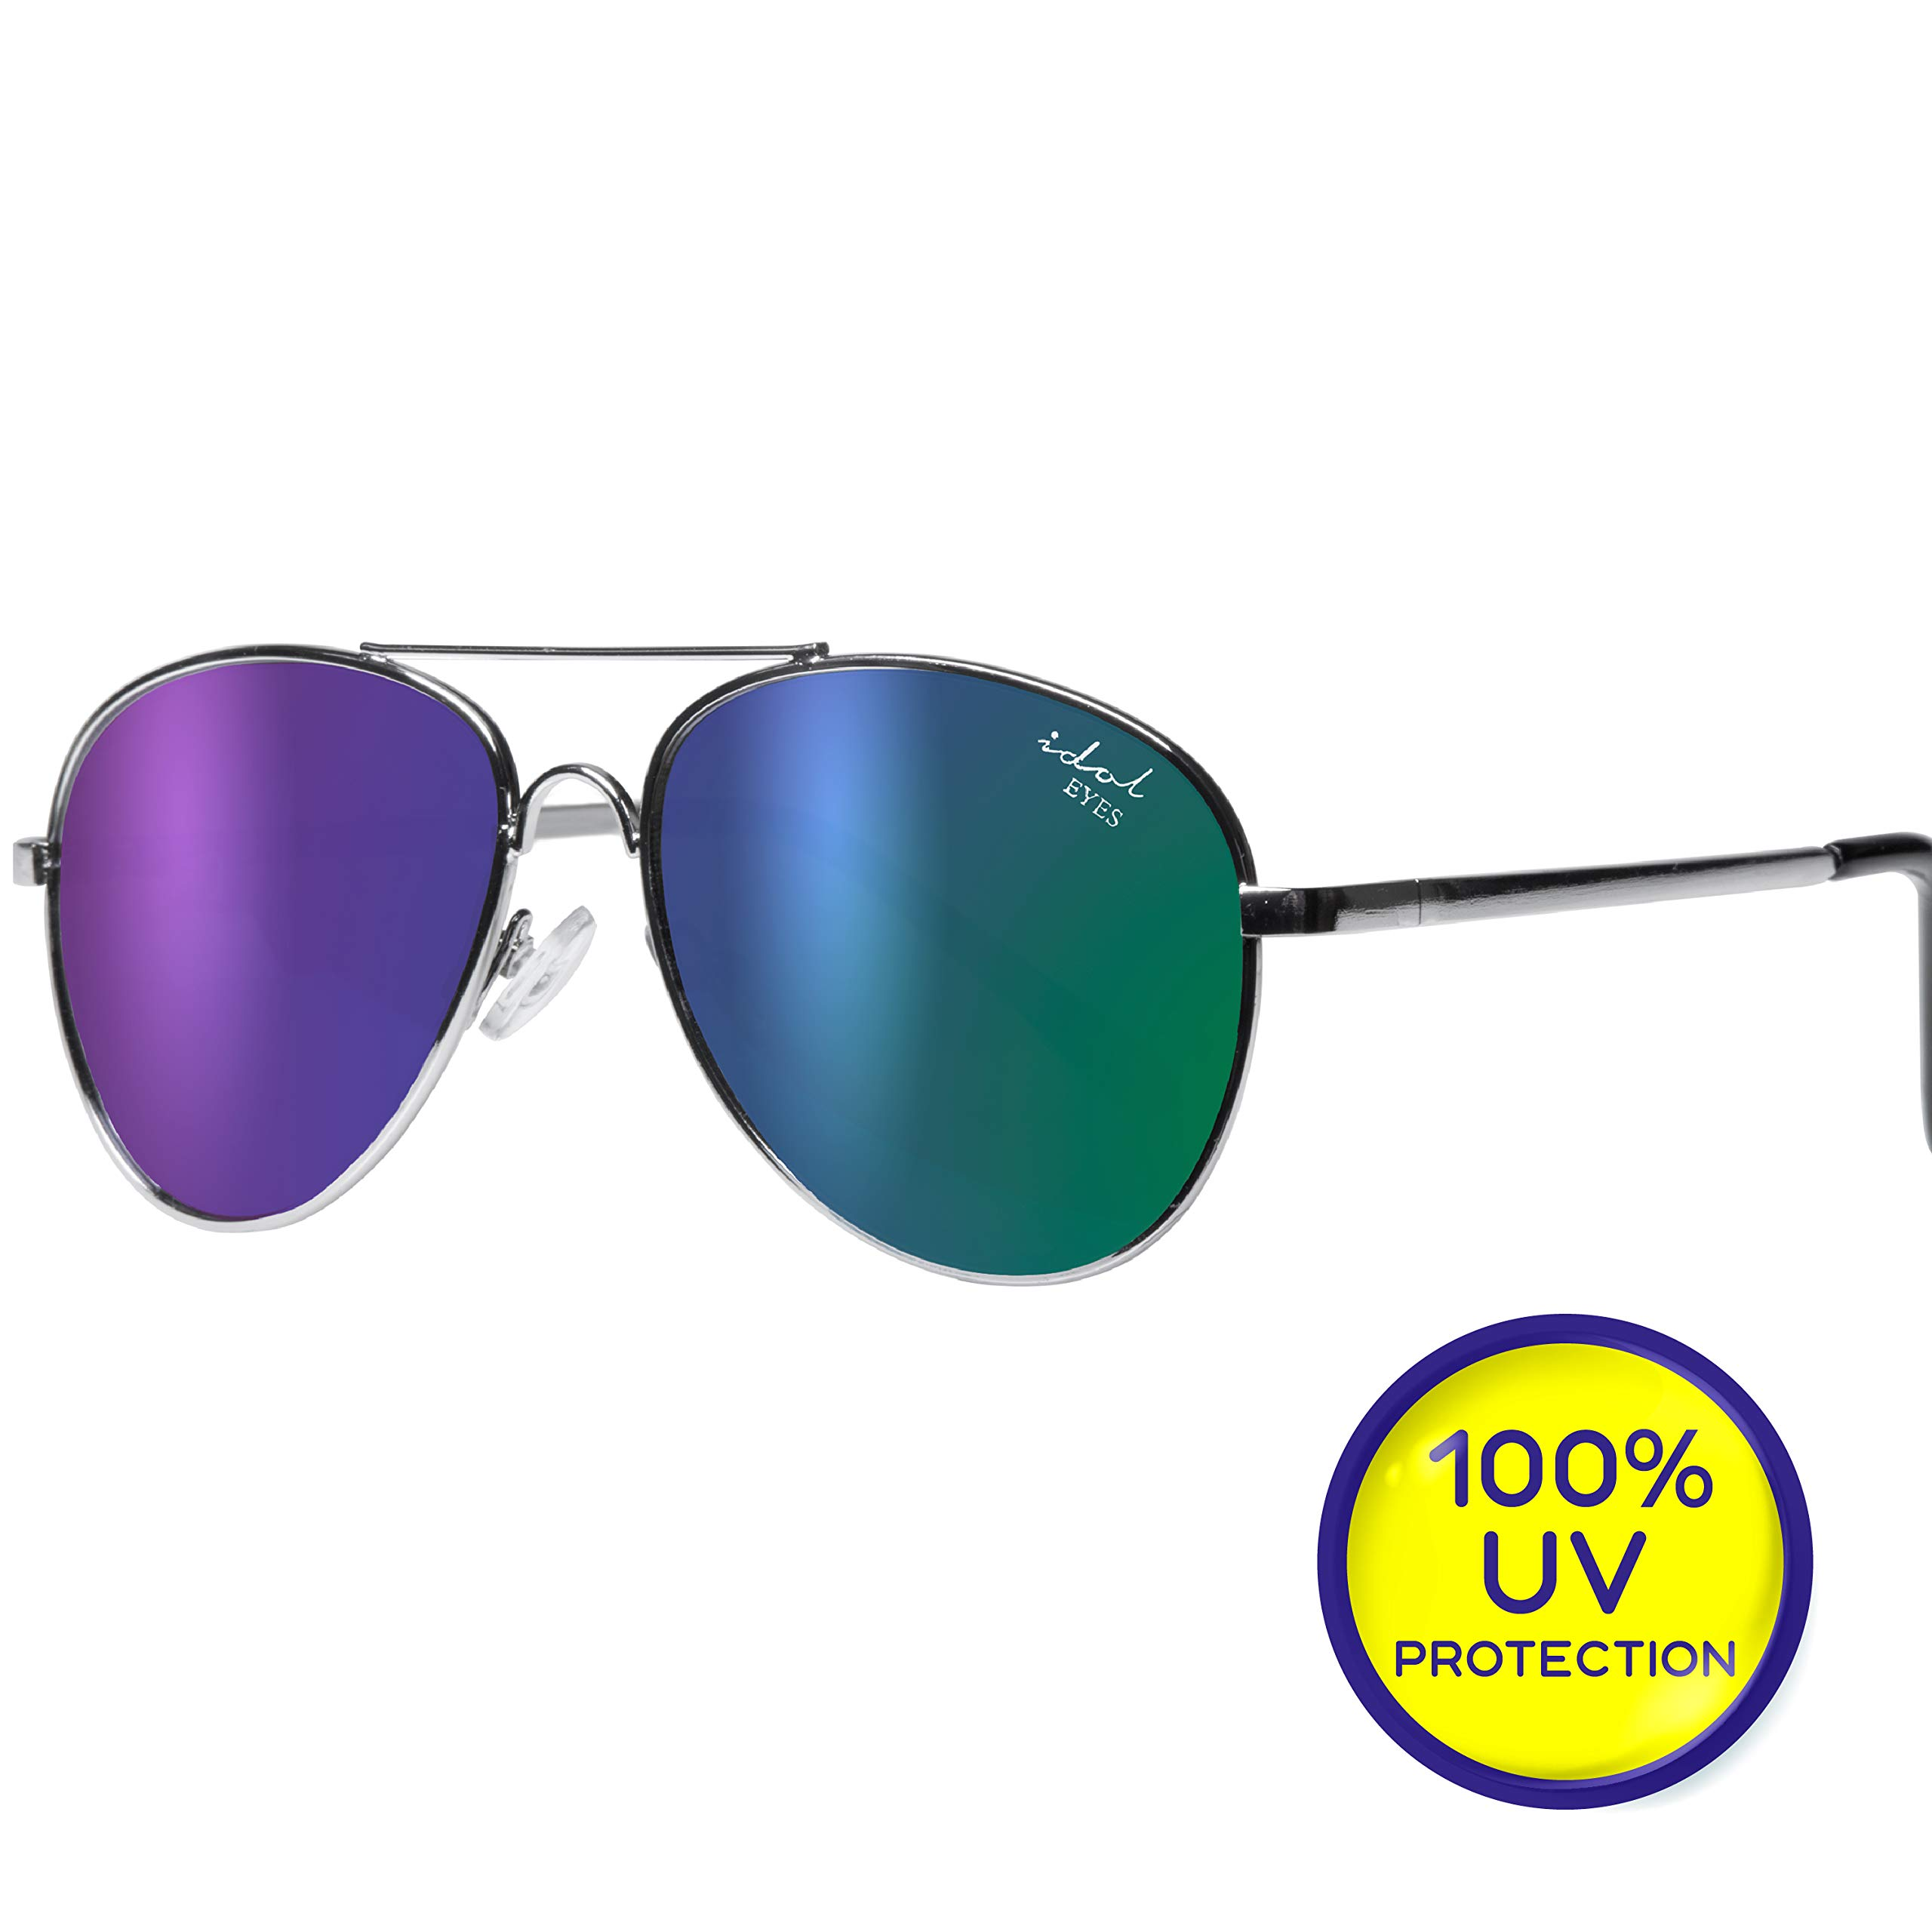 Kids Aviator Sunglasses for Girls and Boys in Gold/Silver Metal Frame - Idol Eyes Baby Sunglasses with Microfiber Pouch + 100% UV Protection by Livin' Well